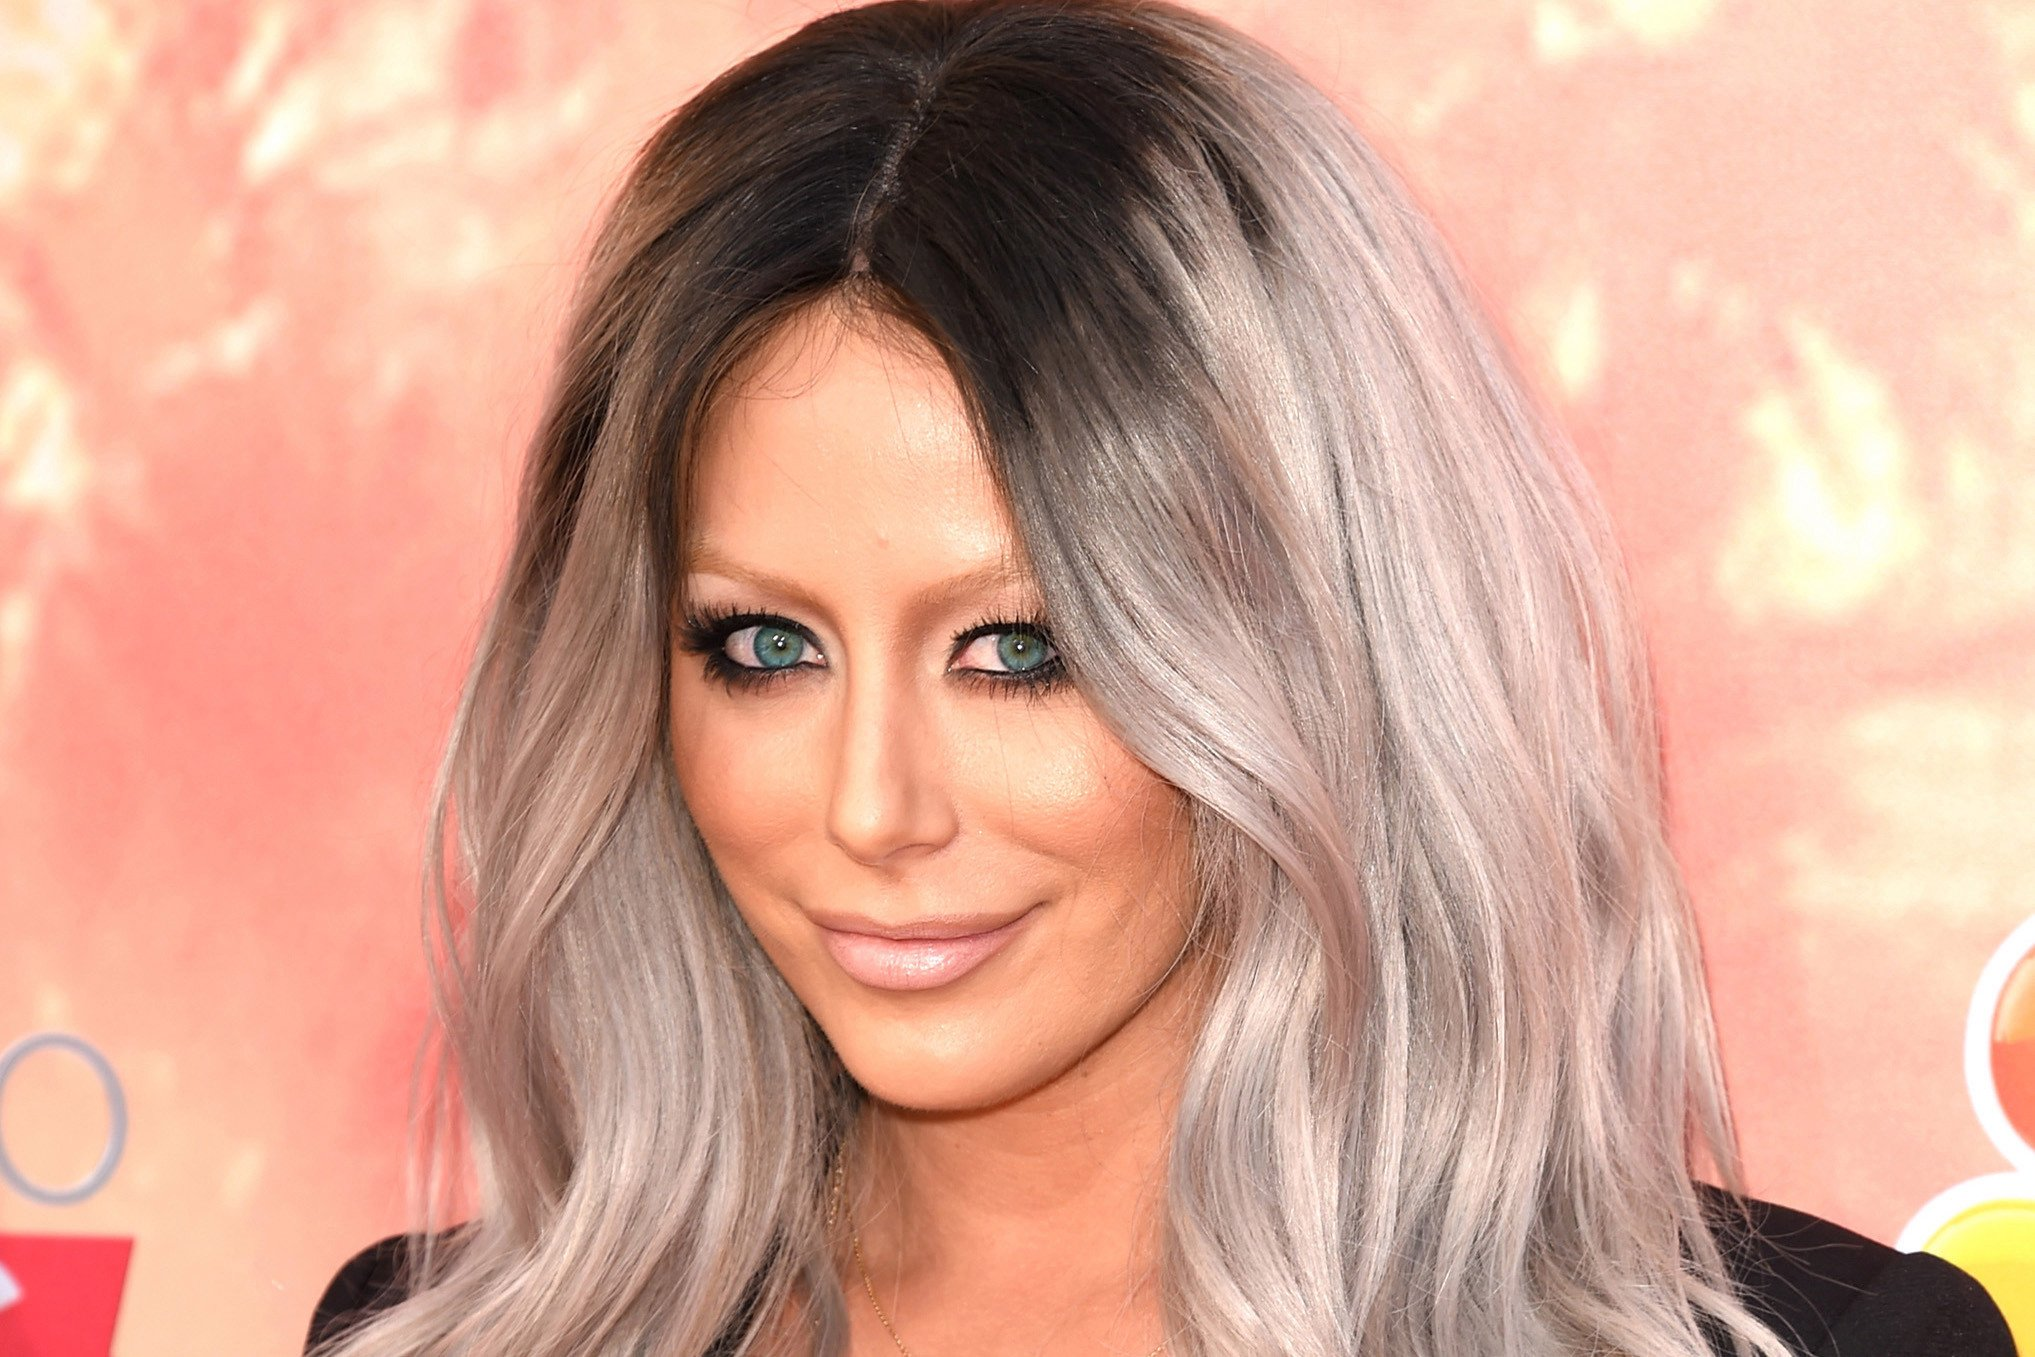 Is Aubrey O'Day's song 'DJT' about Donald Trump Jr.?